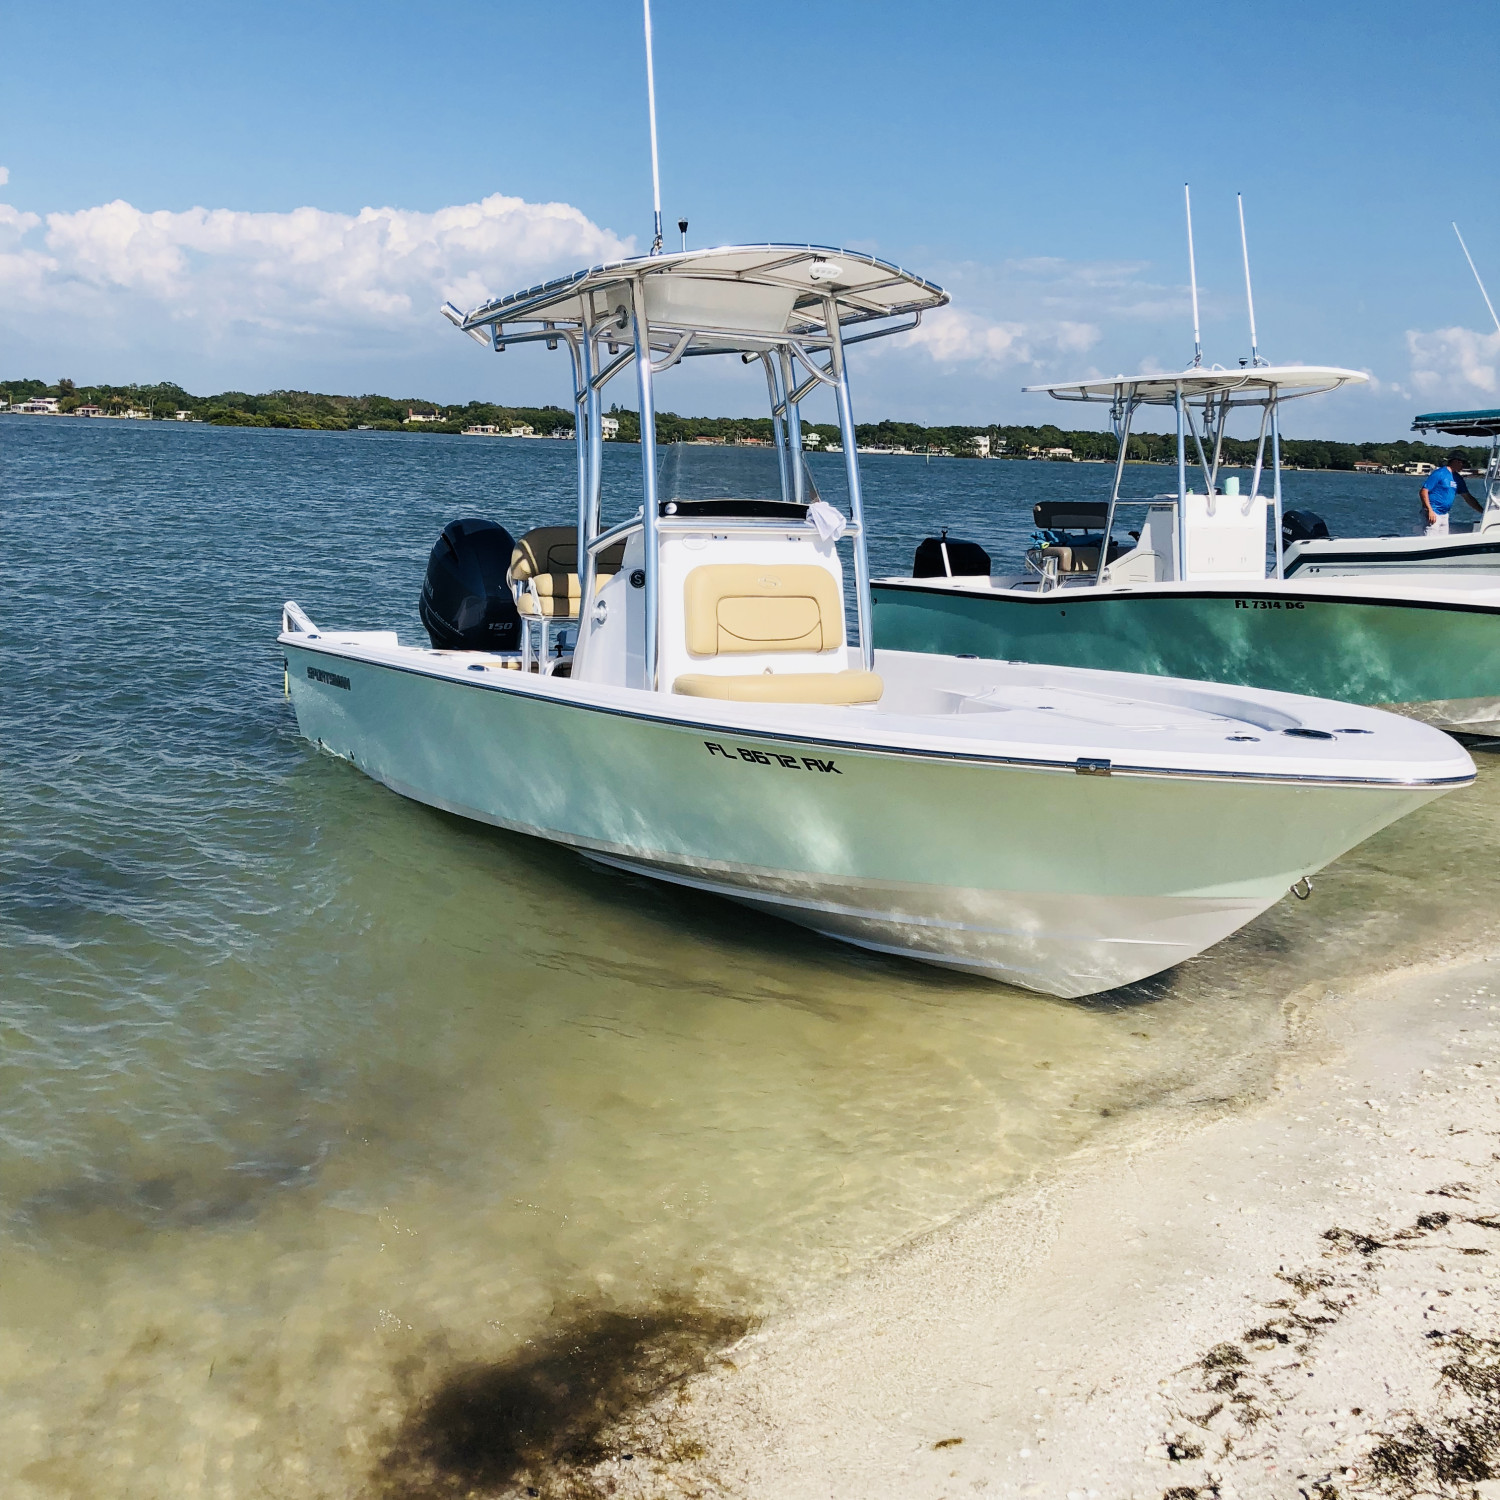 Title: Beached - On board their Sportsman Masters 227 Bay Boat - Location: St. Petersburg, Florida. Participating in the Photo Contest #SportsmanMay2018